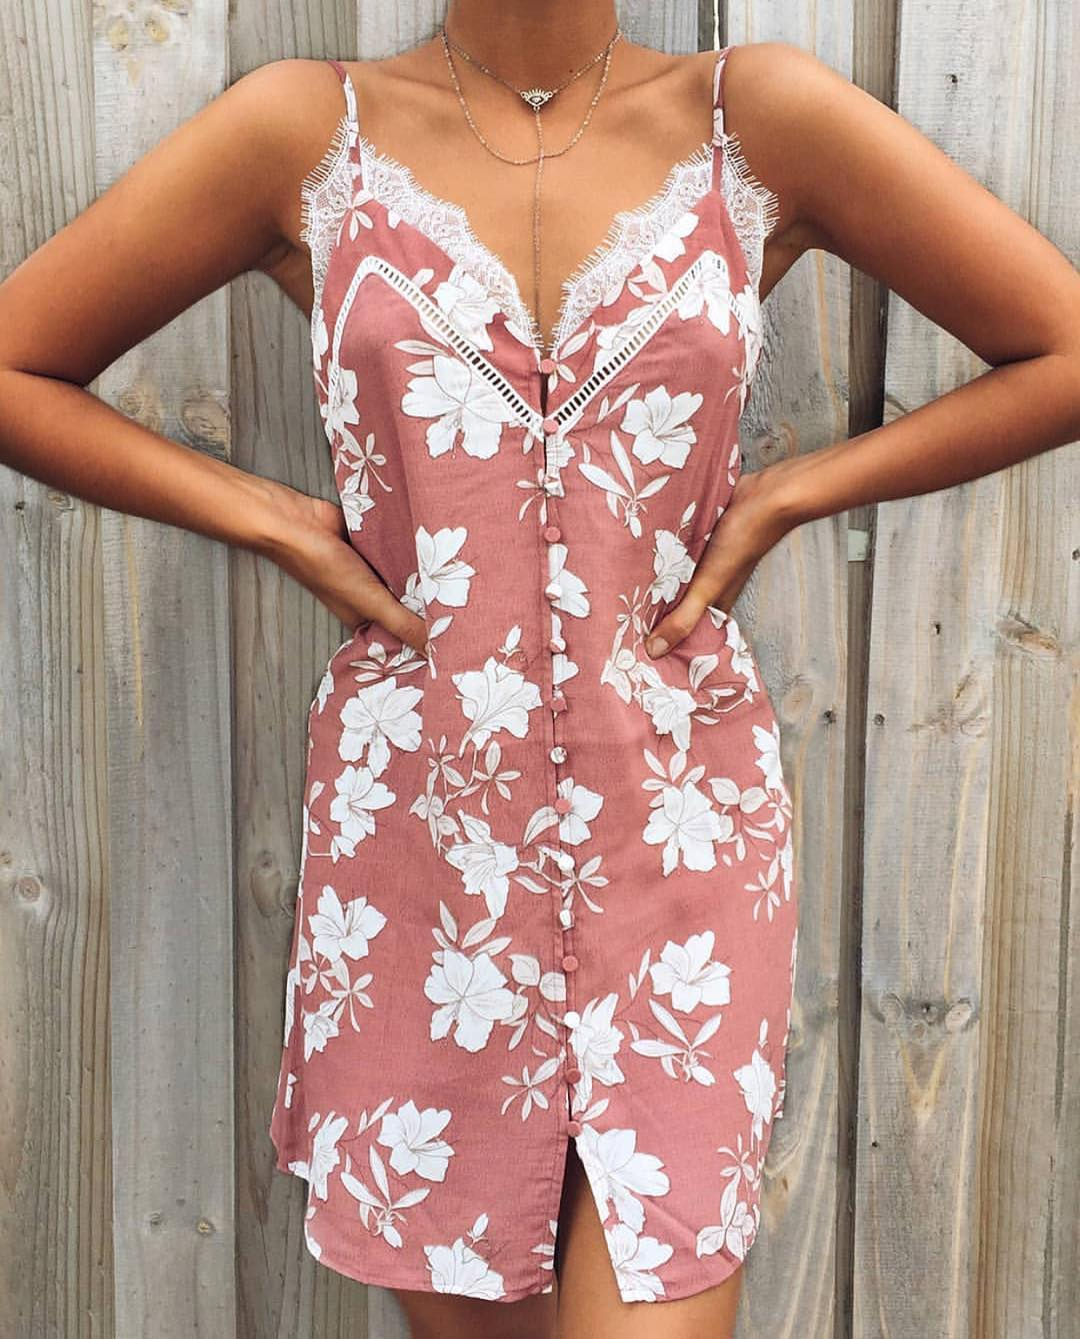 Blush Dress In White Floral Print For Summer Chilly Days 2020